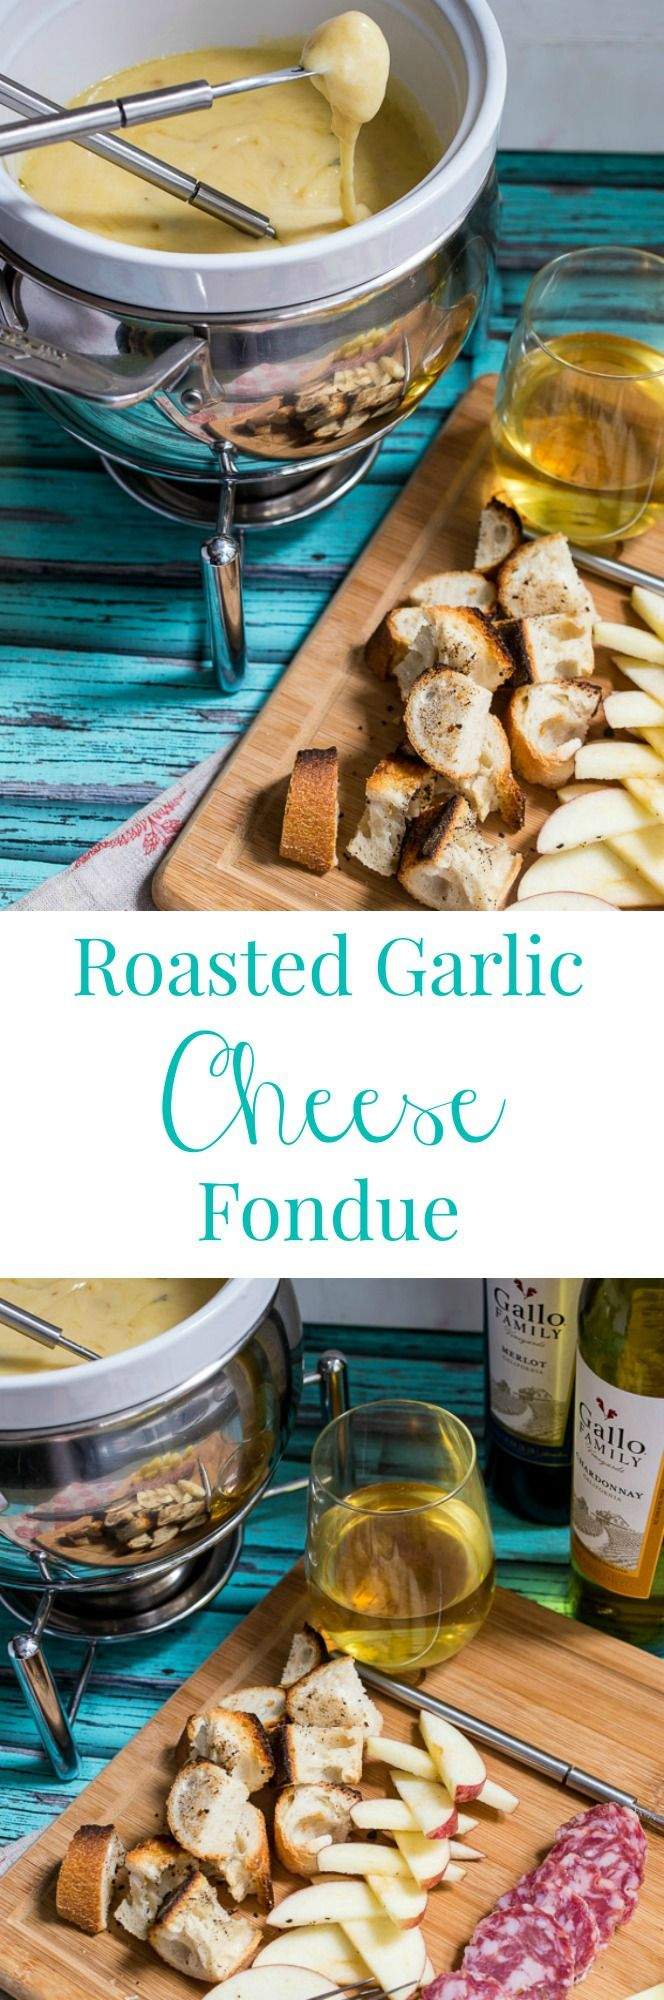 Roasted Garlic Cheese Fondue   Sweet caramelized garlic mashed with French Comte cheese for an irresistible cheese fondue